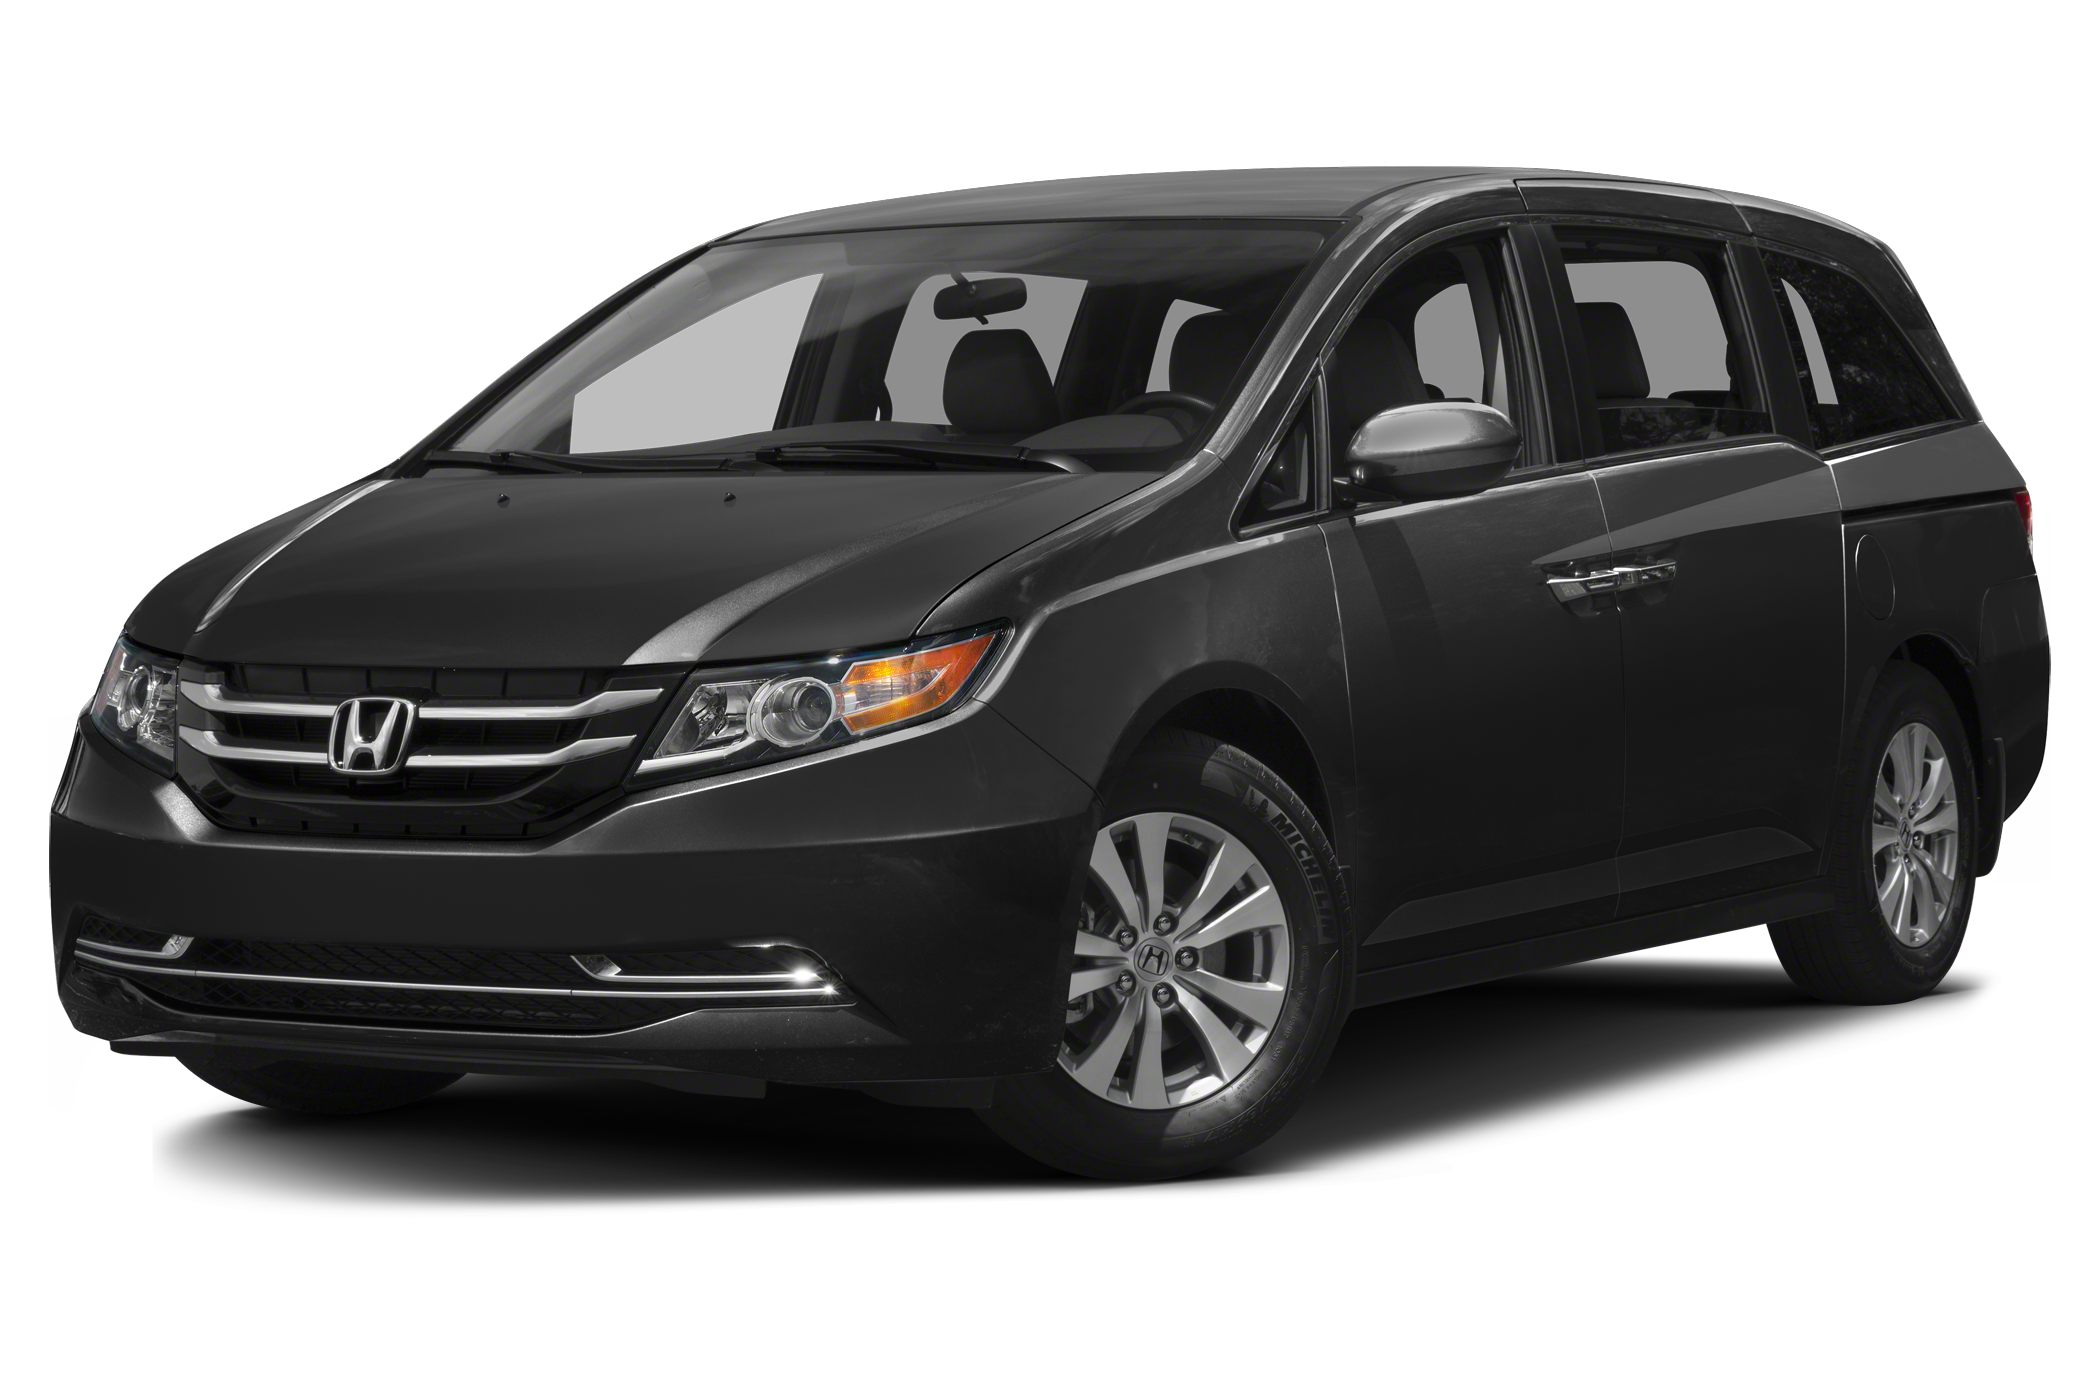 2016 Honda Odyssey EX Gettel Certified Plus One Owner Clean Carfax Local Trade In and